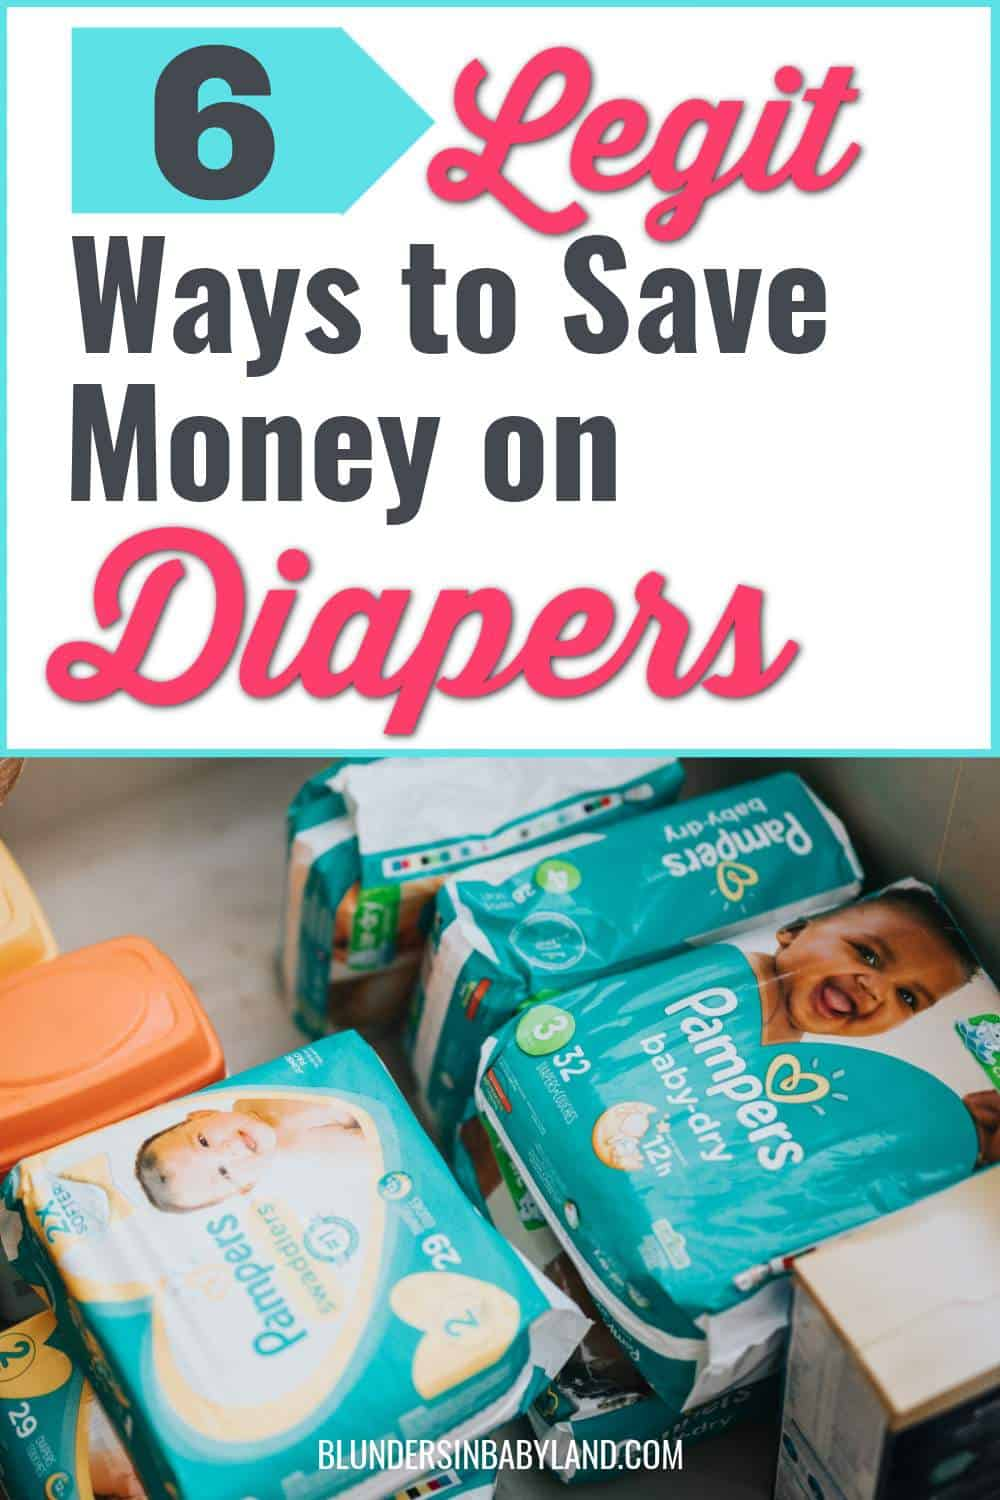 Save money on diapers - Ways to save money on diapers 2